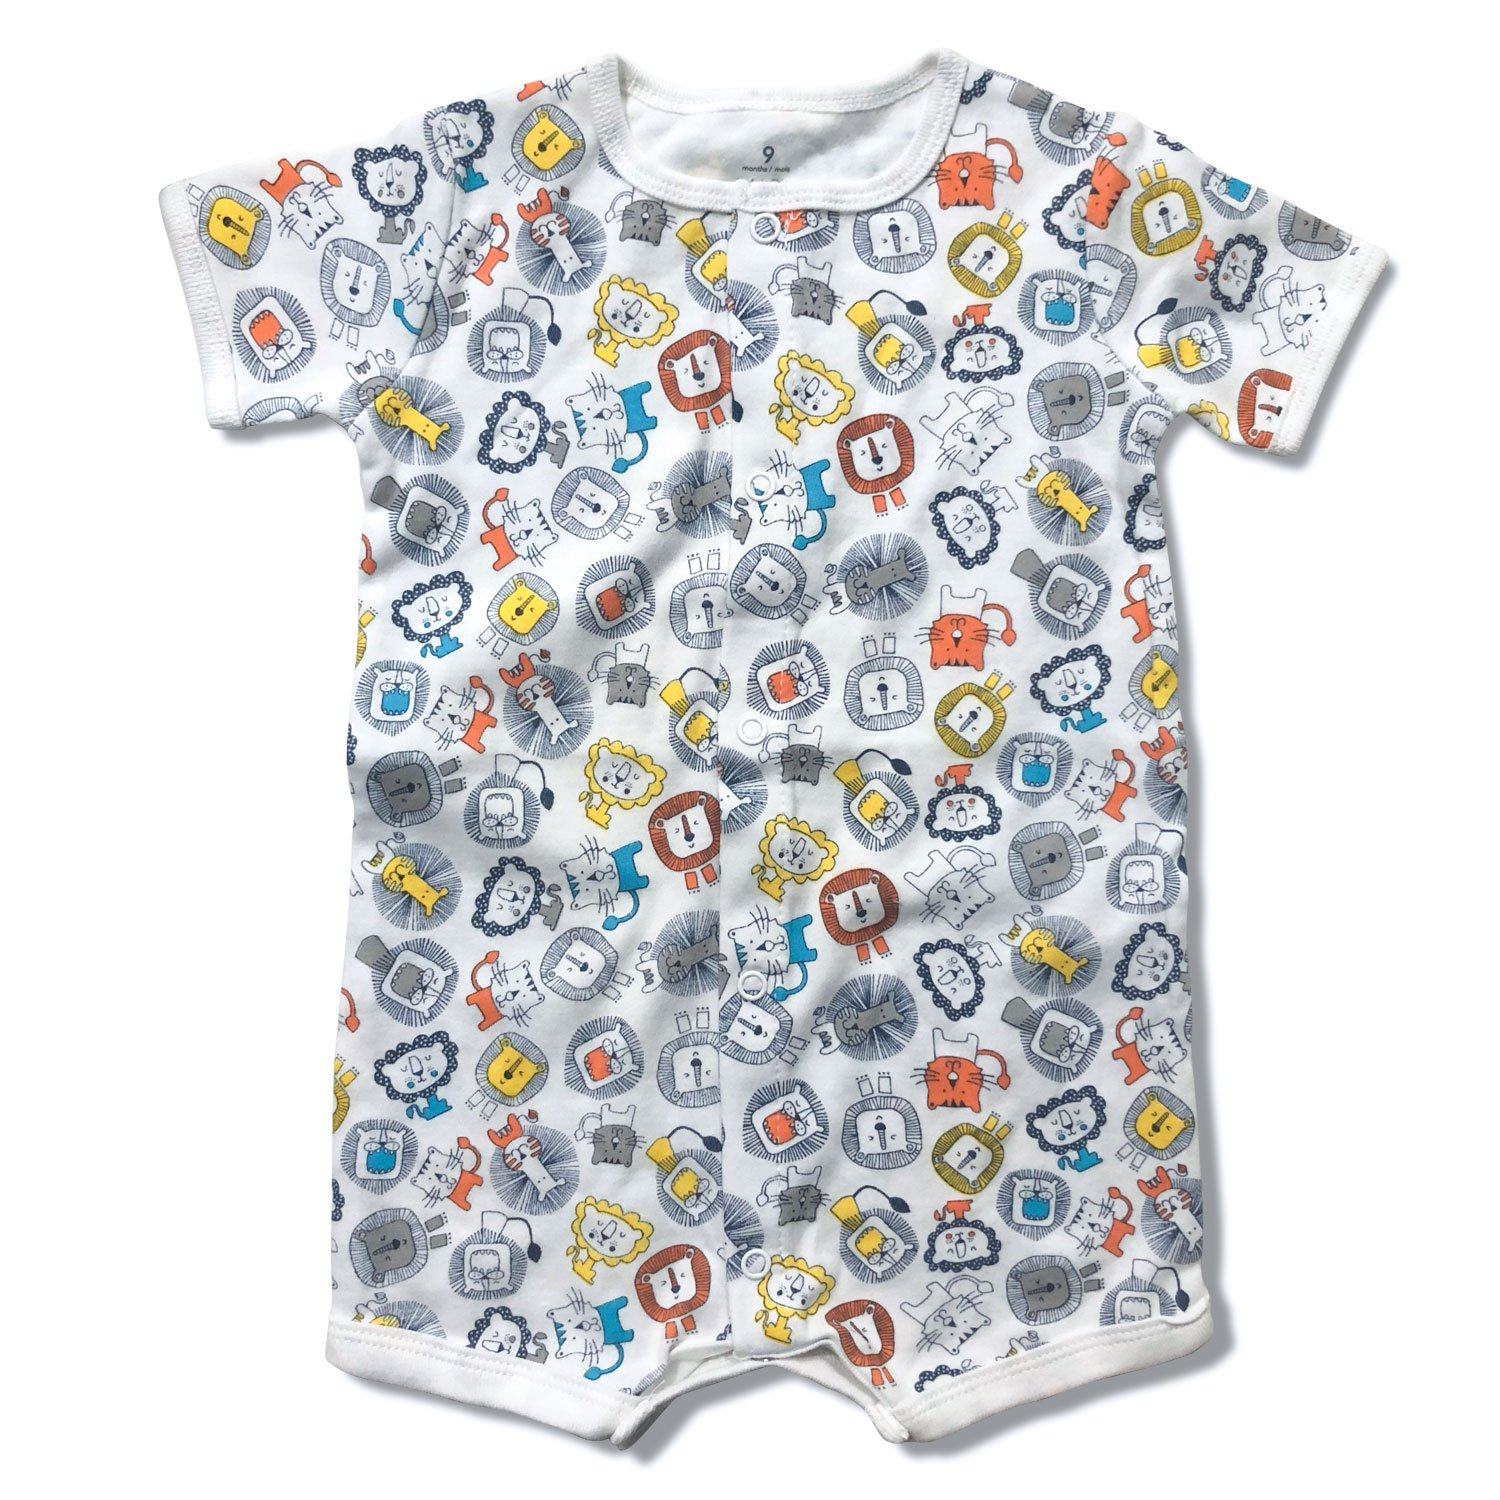 Infant Baby Boys Girls Short Sleeve Romper Summer Outfit Snap up Creeper 3-24M (3-6 Months, Lion)